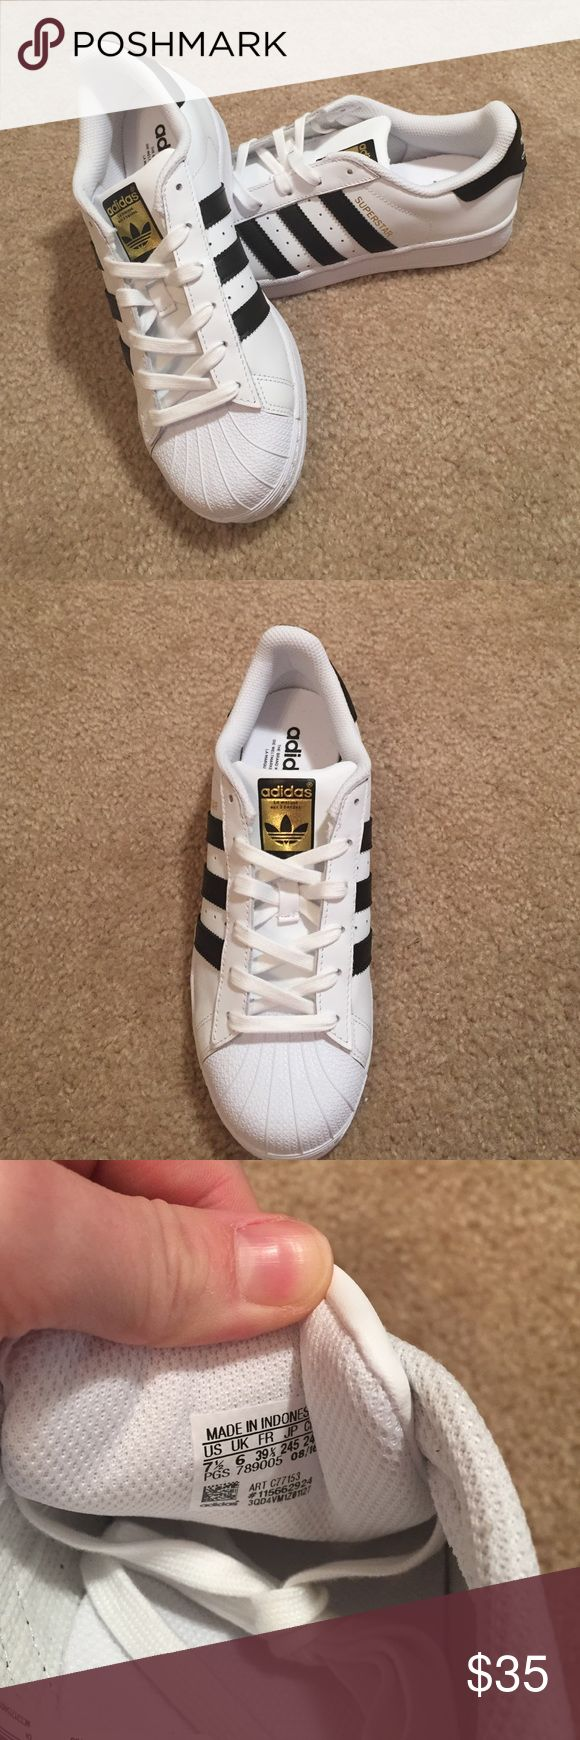 Adidas shoes SIZE 7 1/2 womens. NEVER WORN! Classic adidas shoes. Adidas Shoes Sneakers